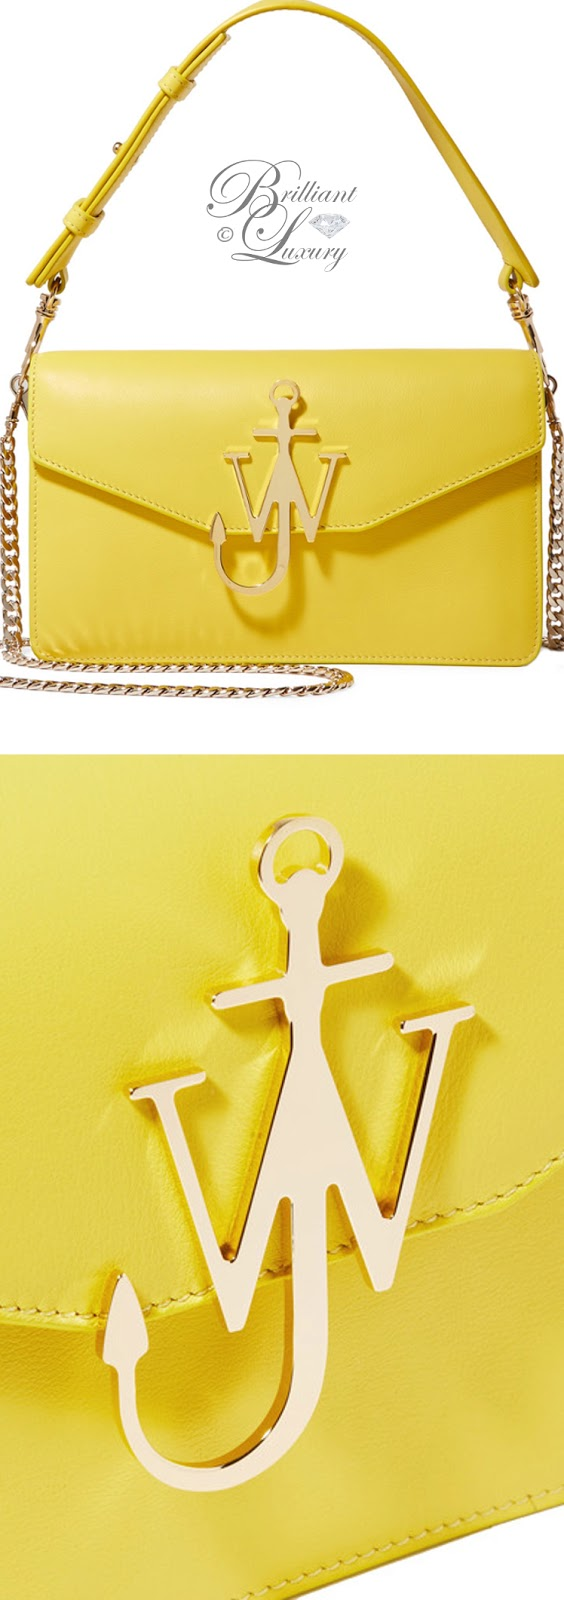 Brilliant Luxury ♦ J.W.Anderson logo yellow leather shoulder bag